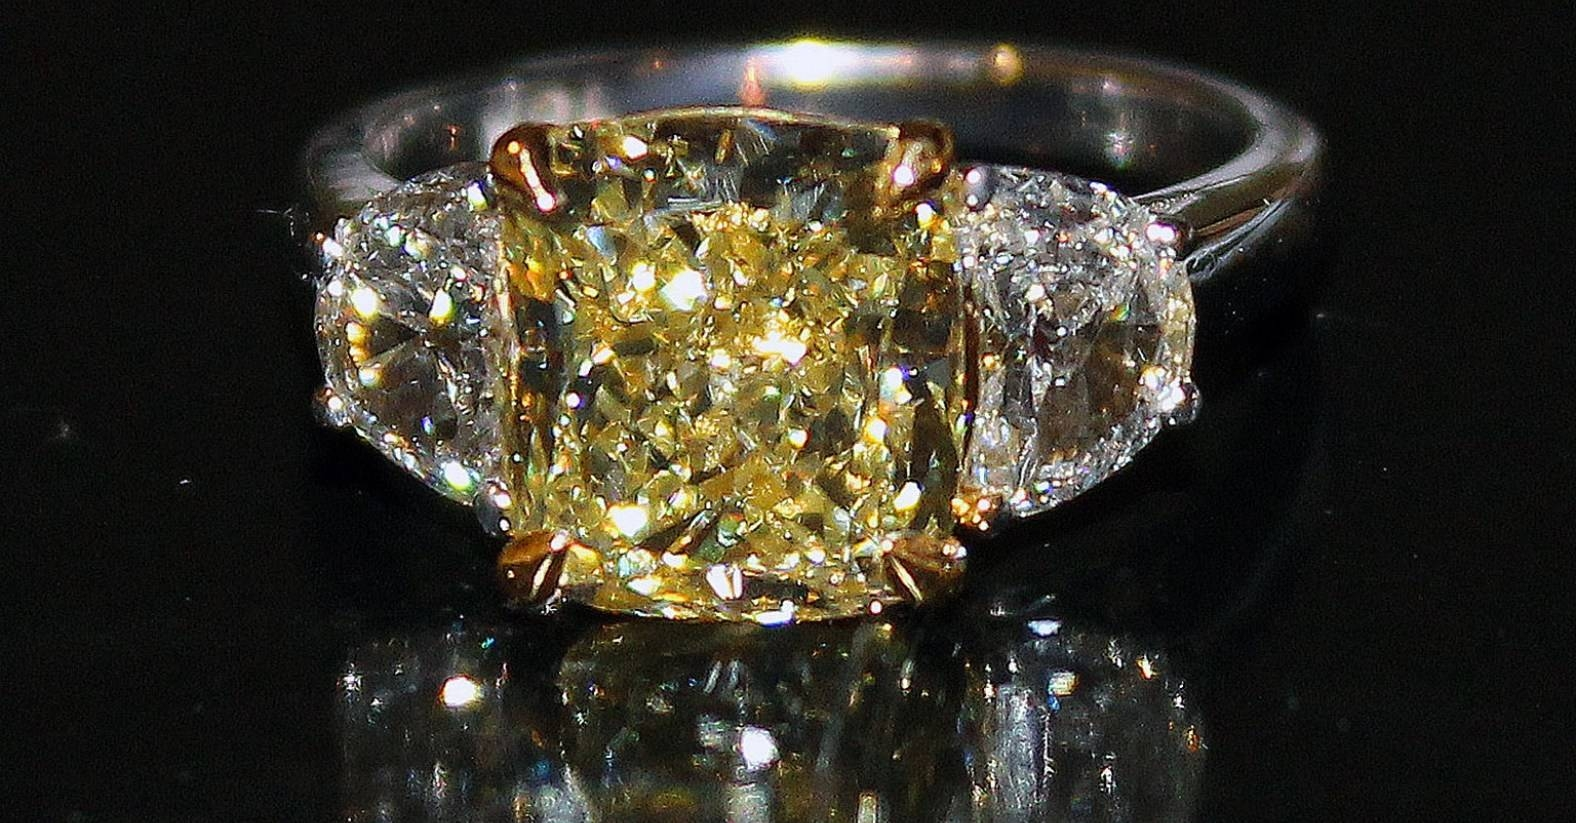 Engagement Rings : Most Beautiful Engagement Rings Ever Beautiful Inside Rochester Engagement Rings (View 15 of 15)